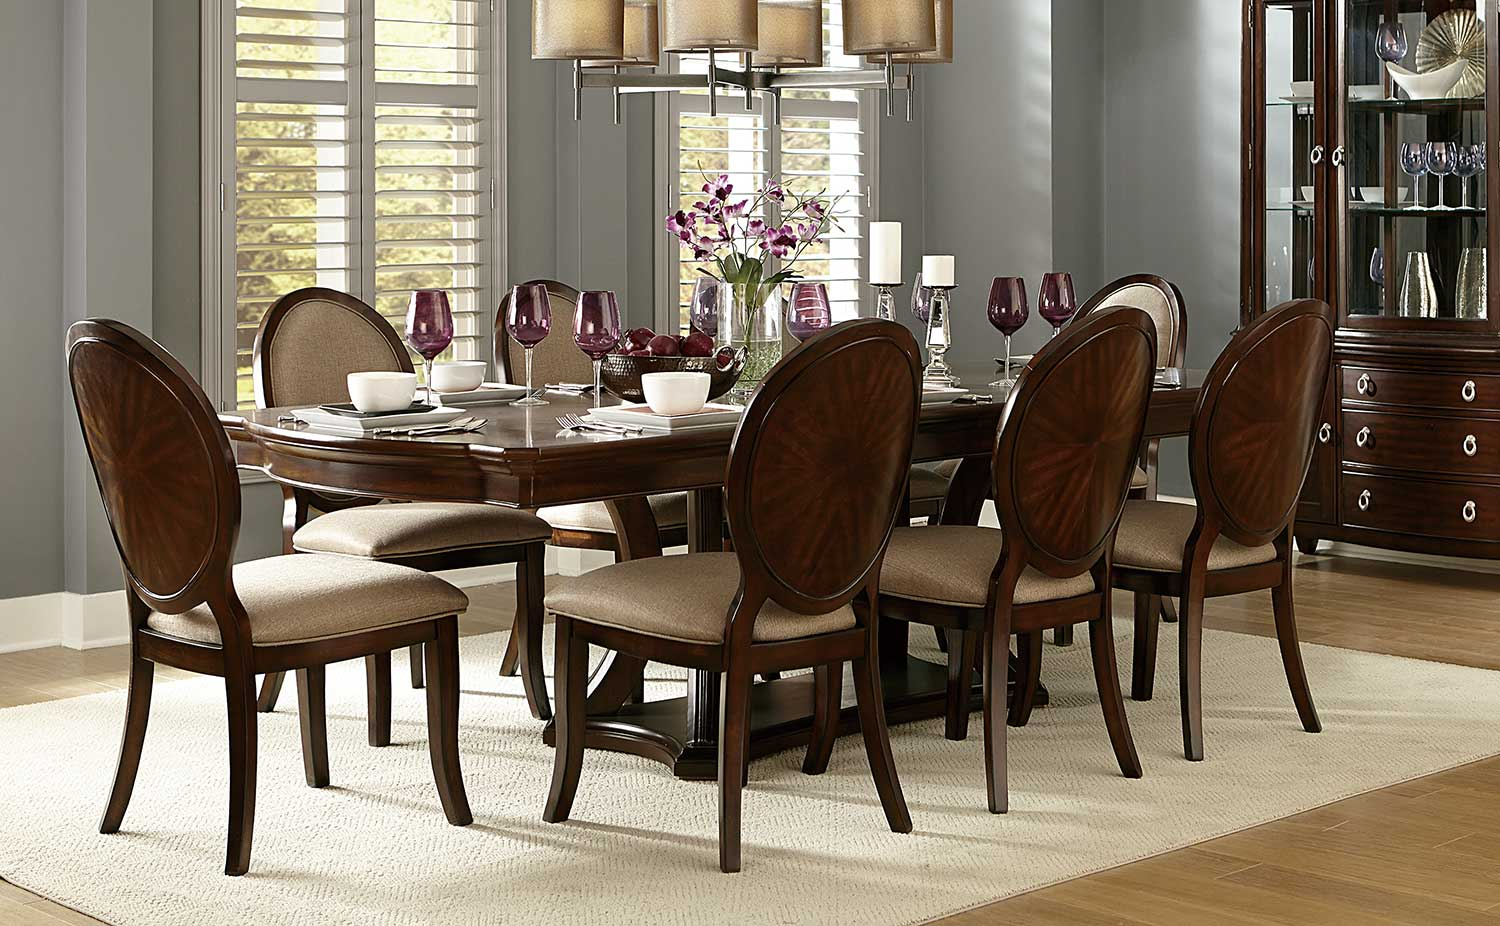 Homelegance Delavan Pedestal Dining Set - Brown Cherry